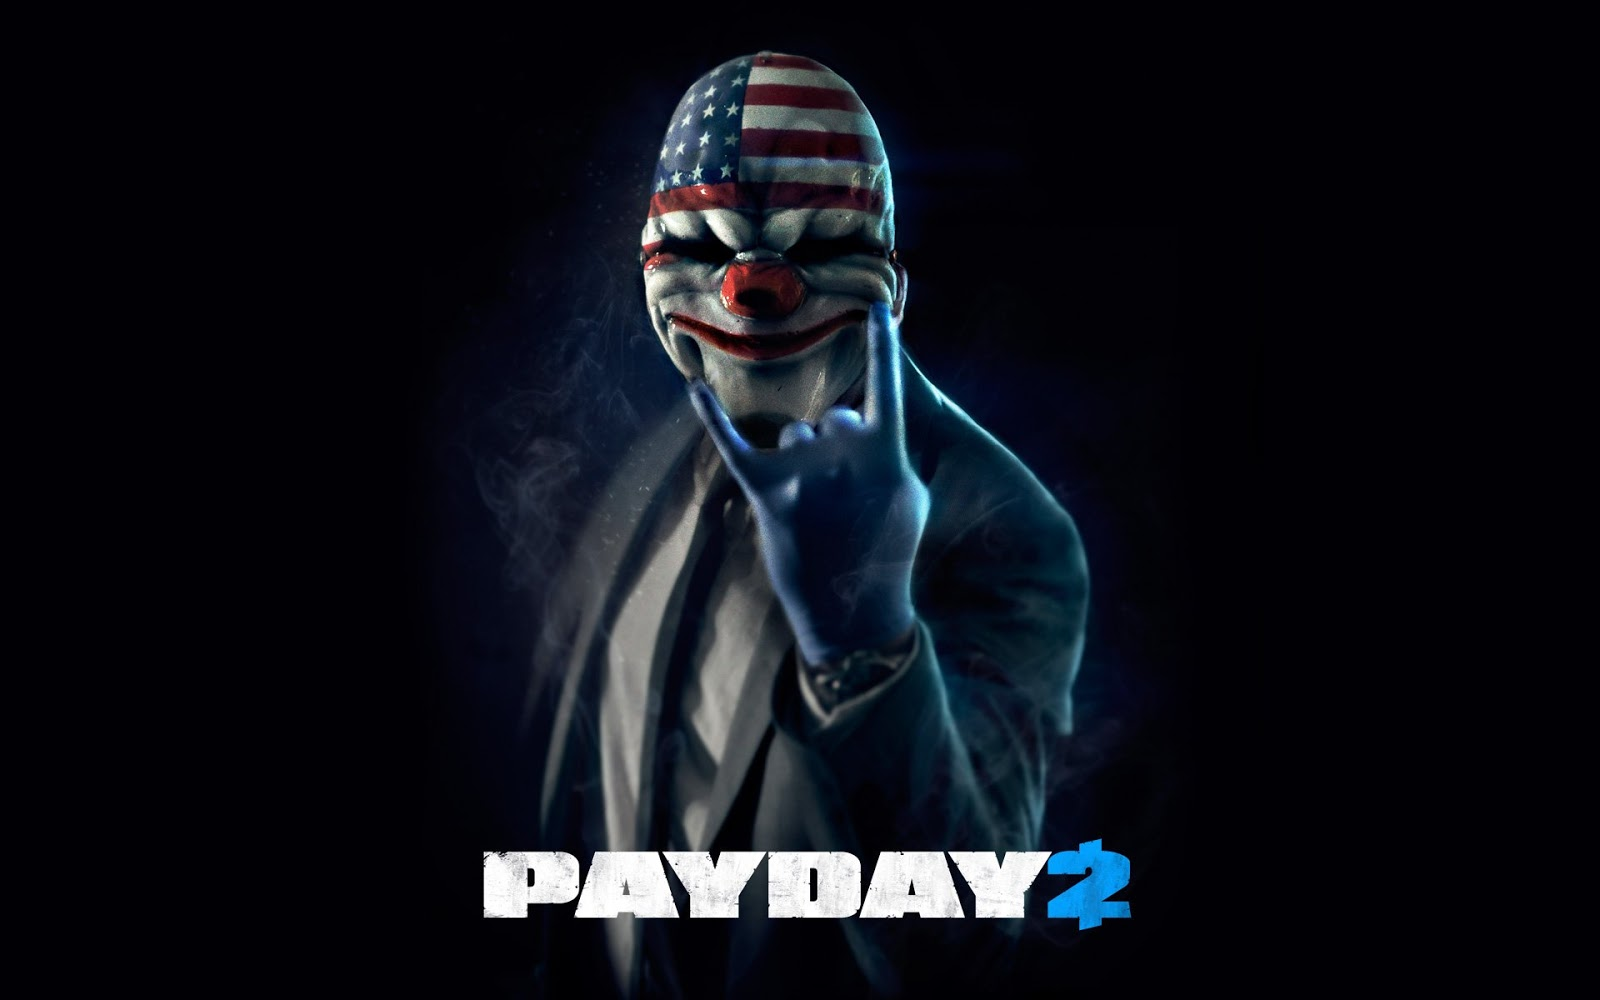 payday 2 career criminal edition mods